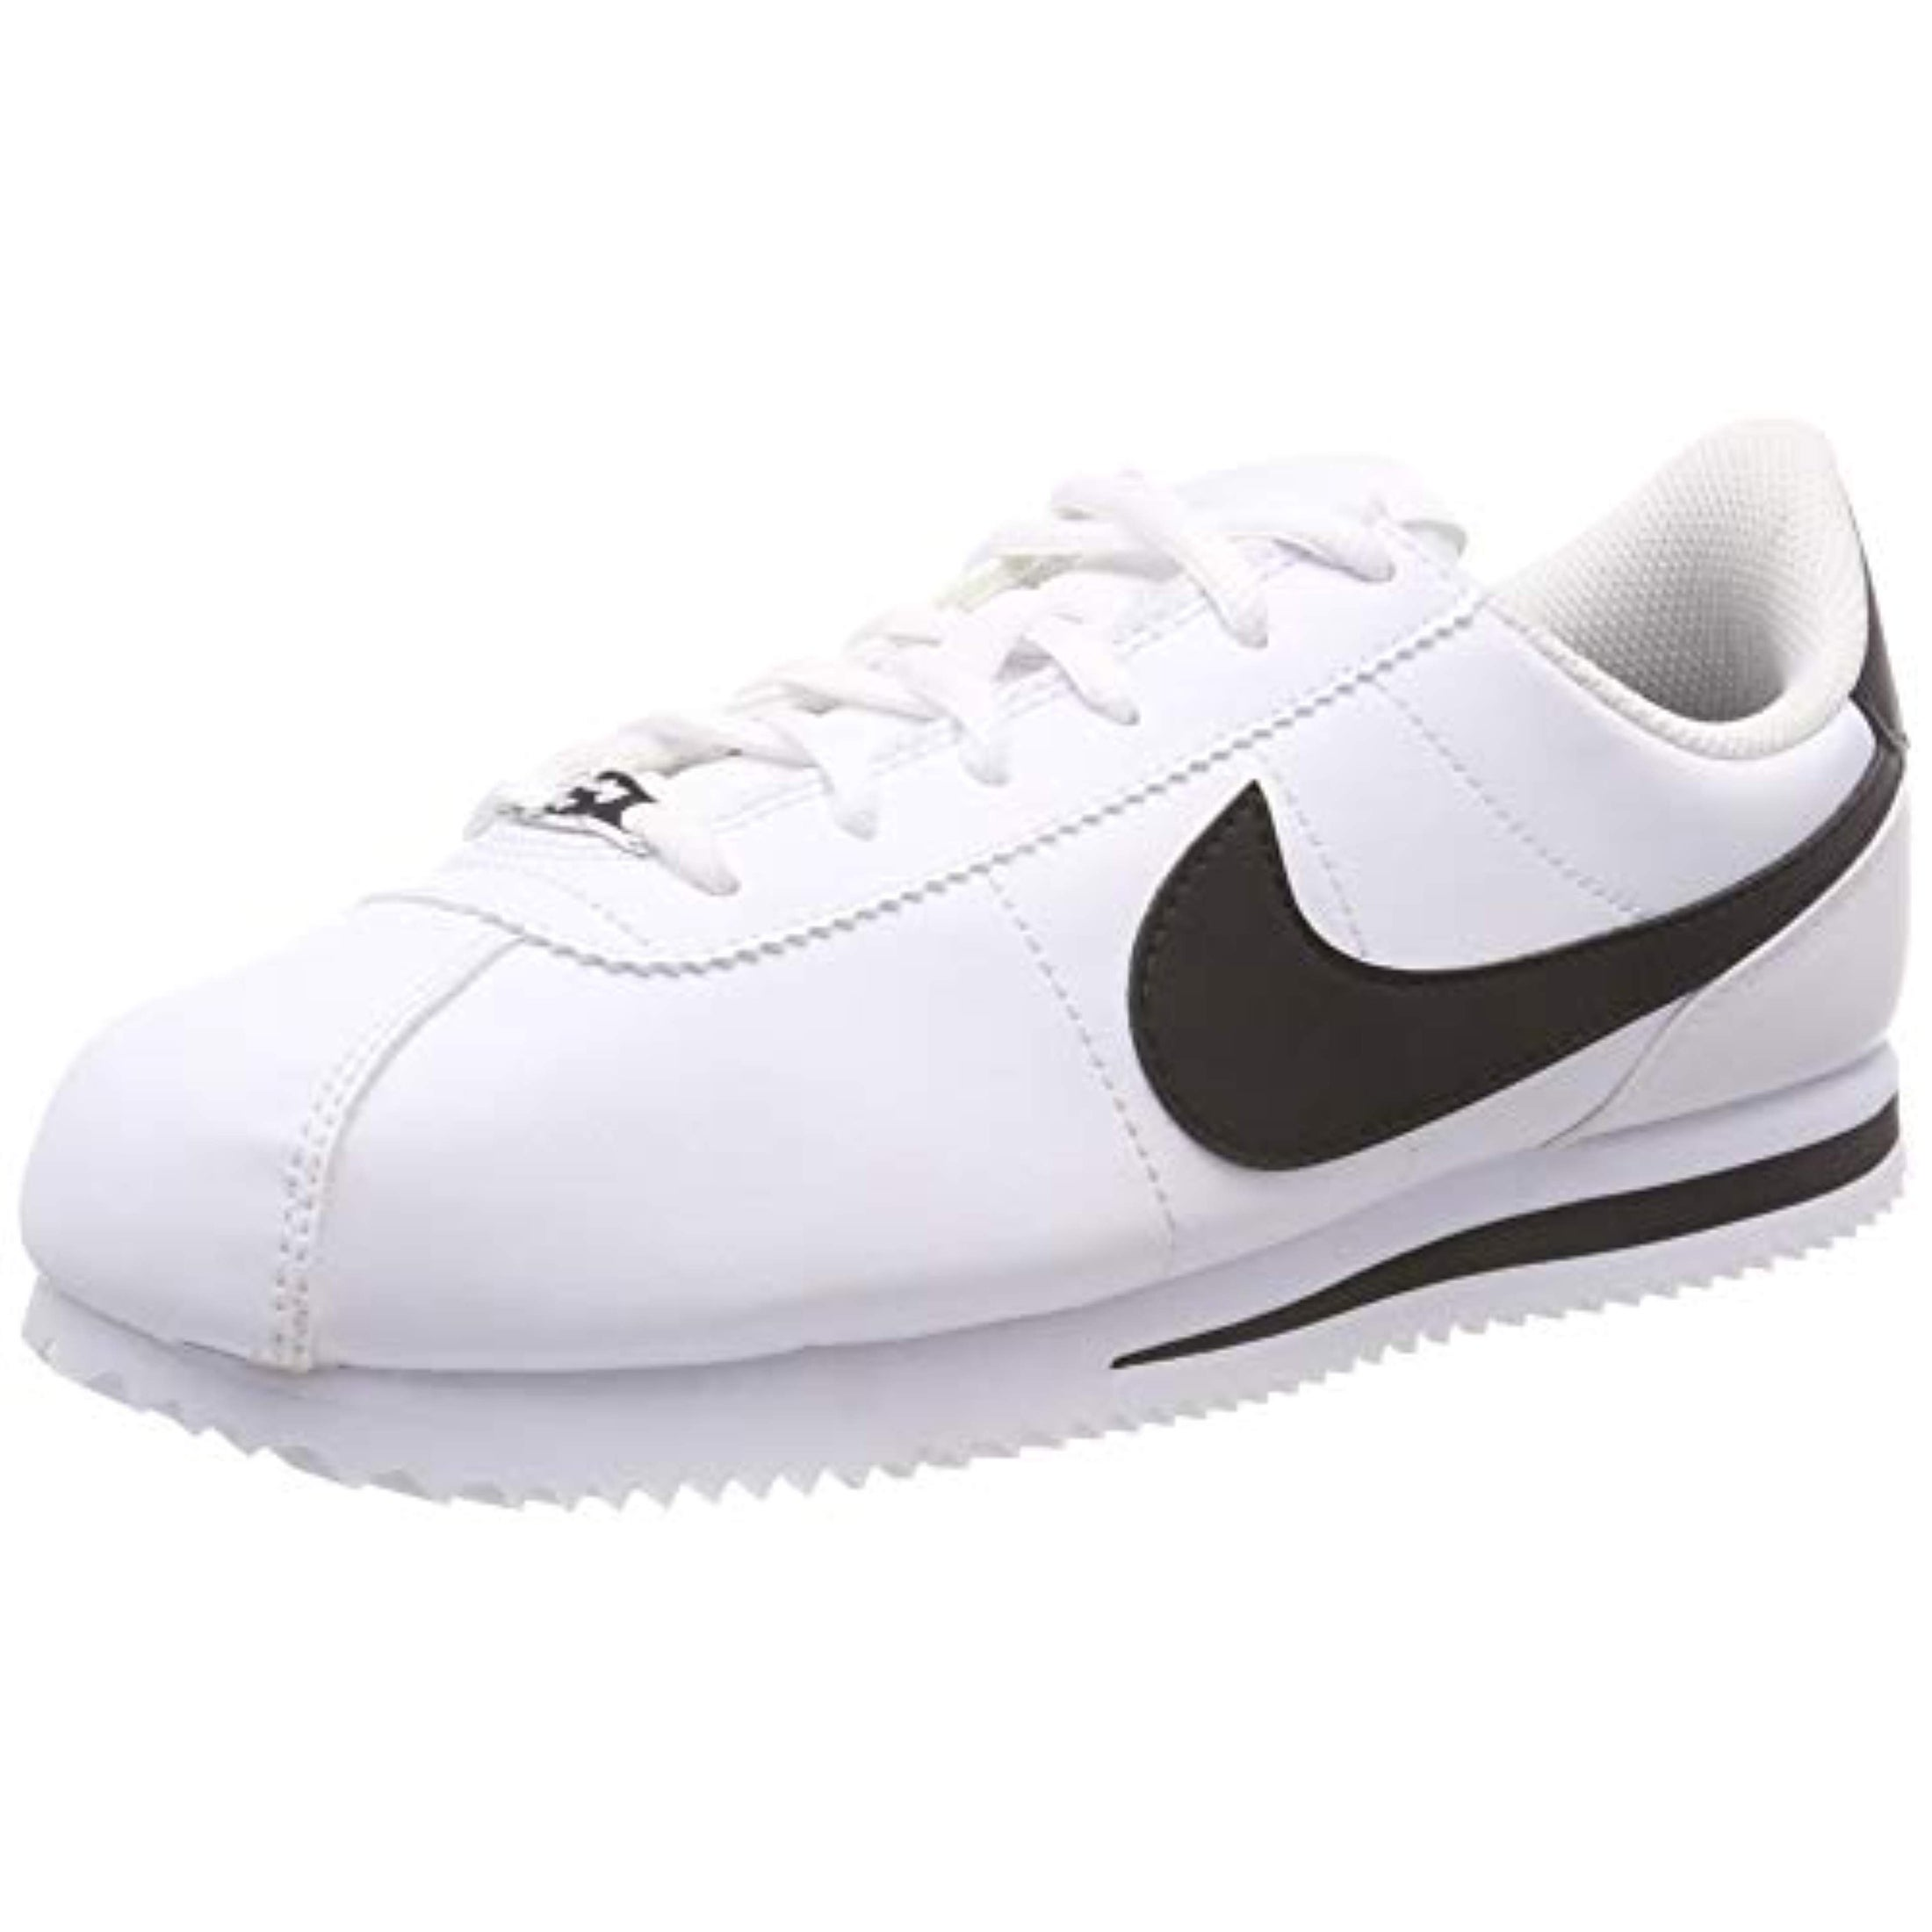 118362f5e9d Nike-904764-102:-Kids-Cortez-Basic-Sl-White-Black-Sneakers.jpg